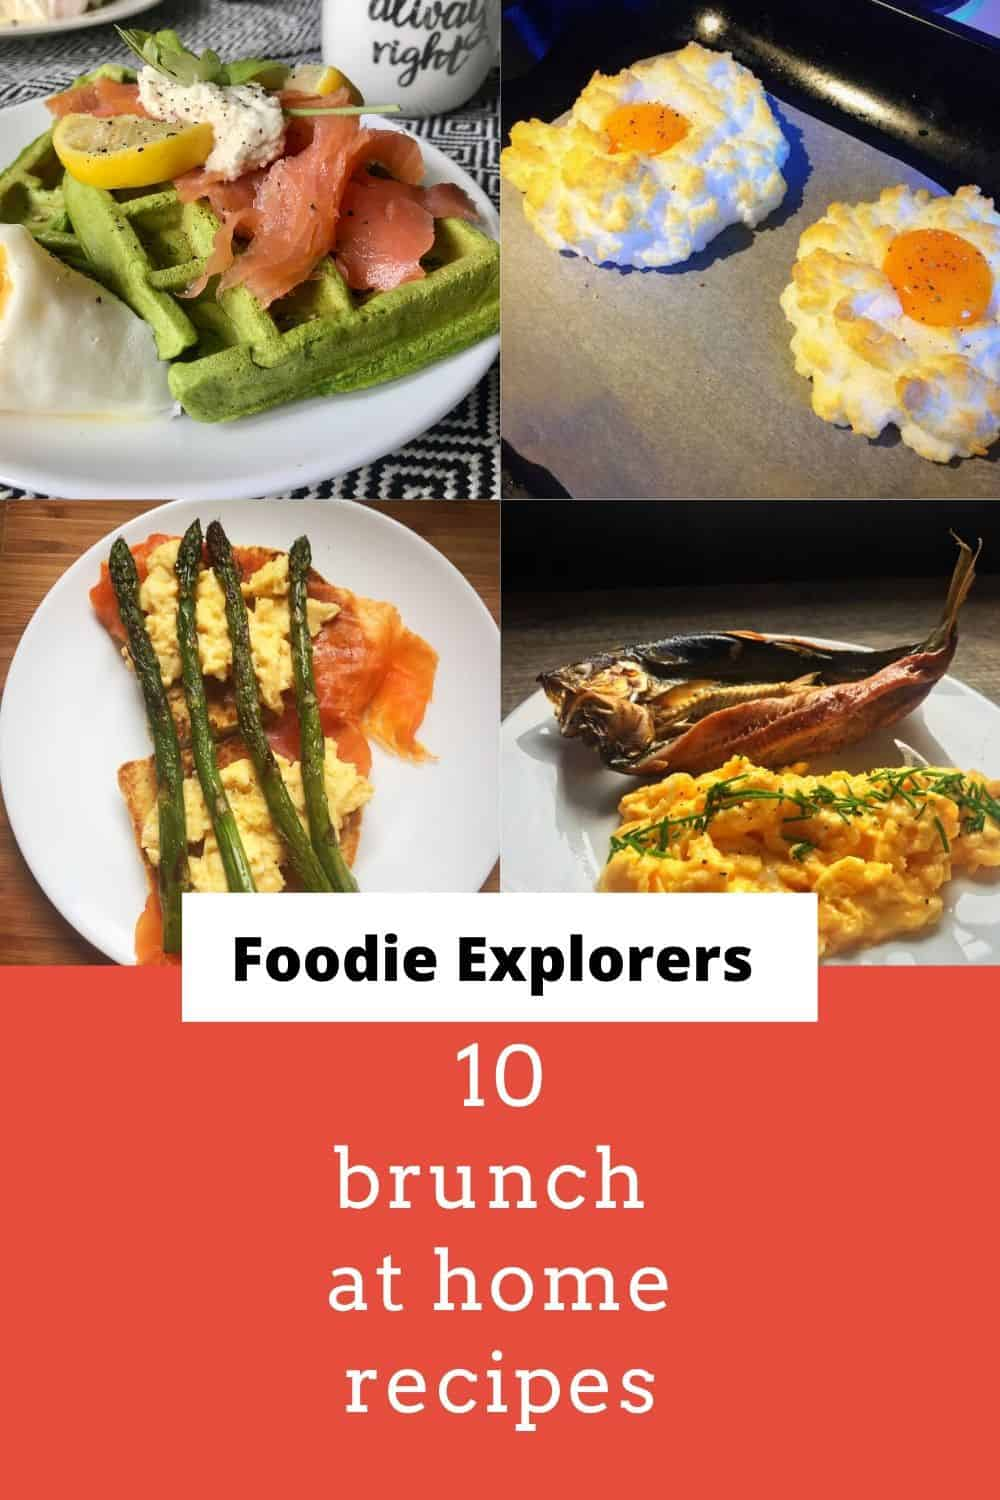 10 brunch at home recipes